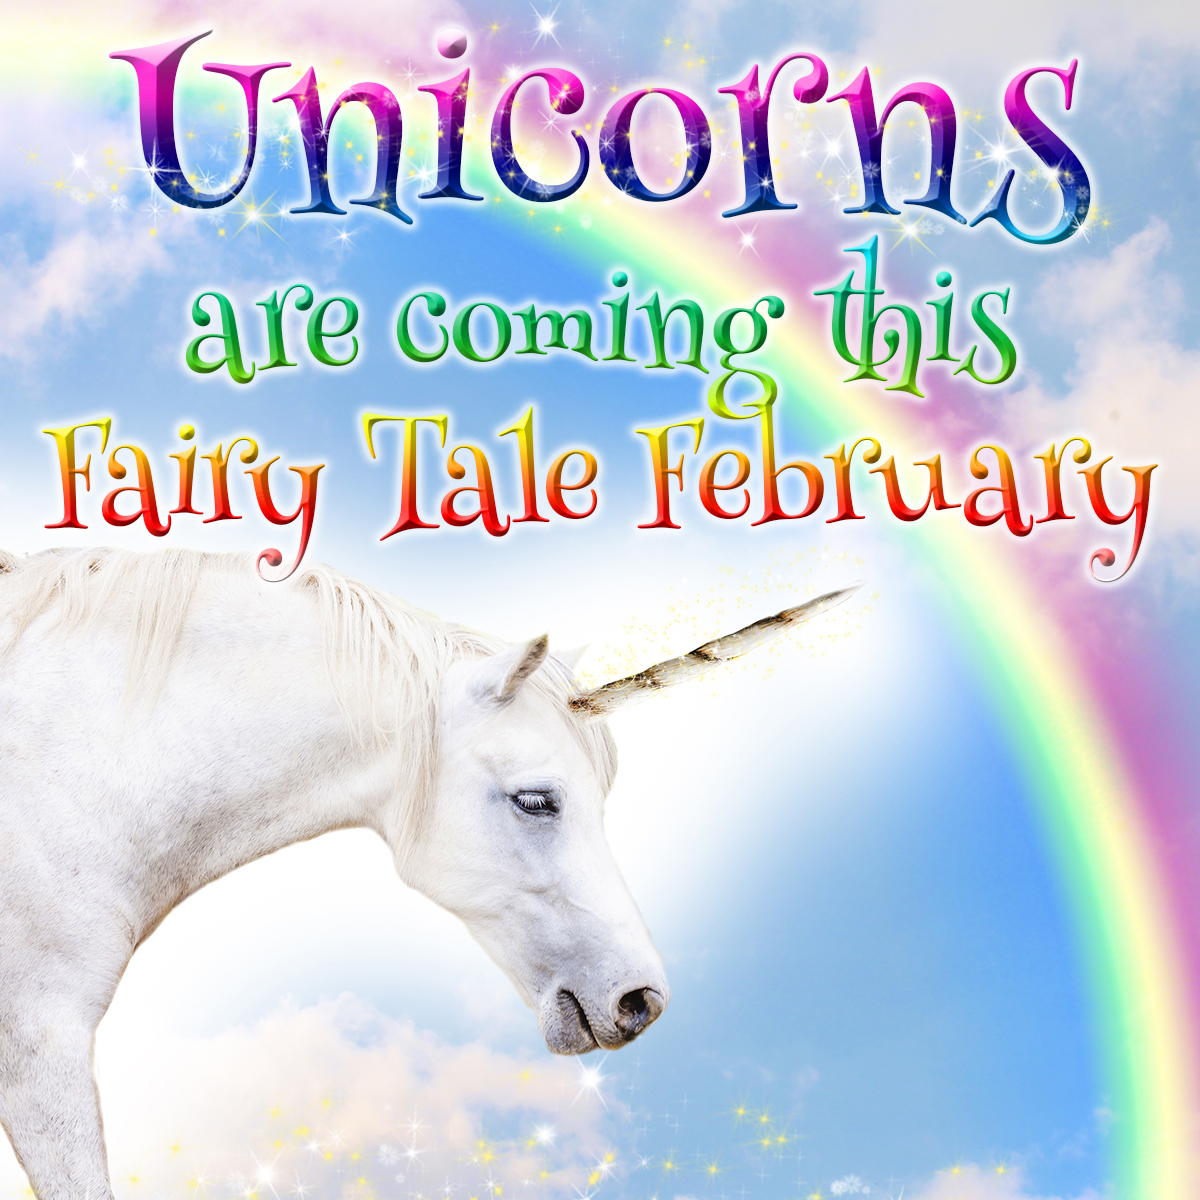 Fairytale February Unicorns Are Coming Avon Valley